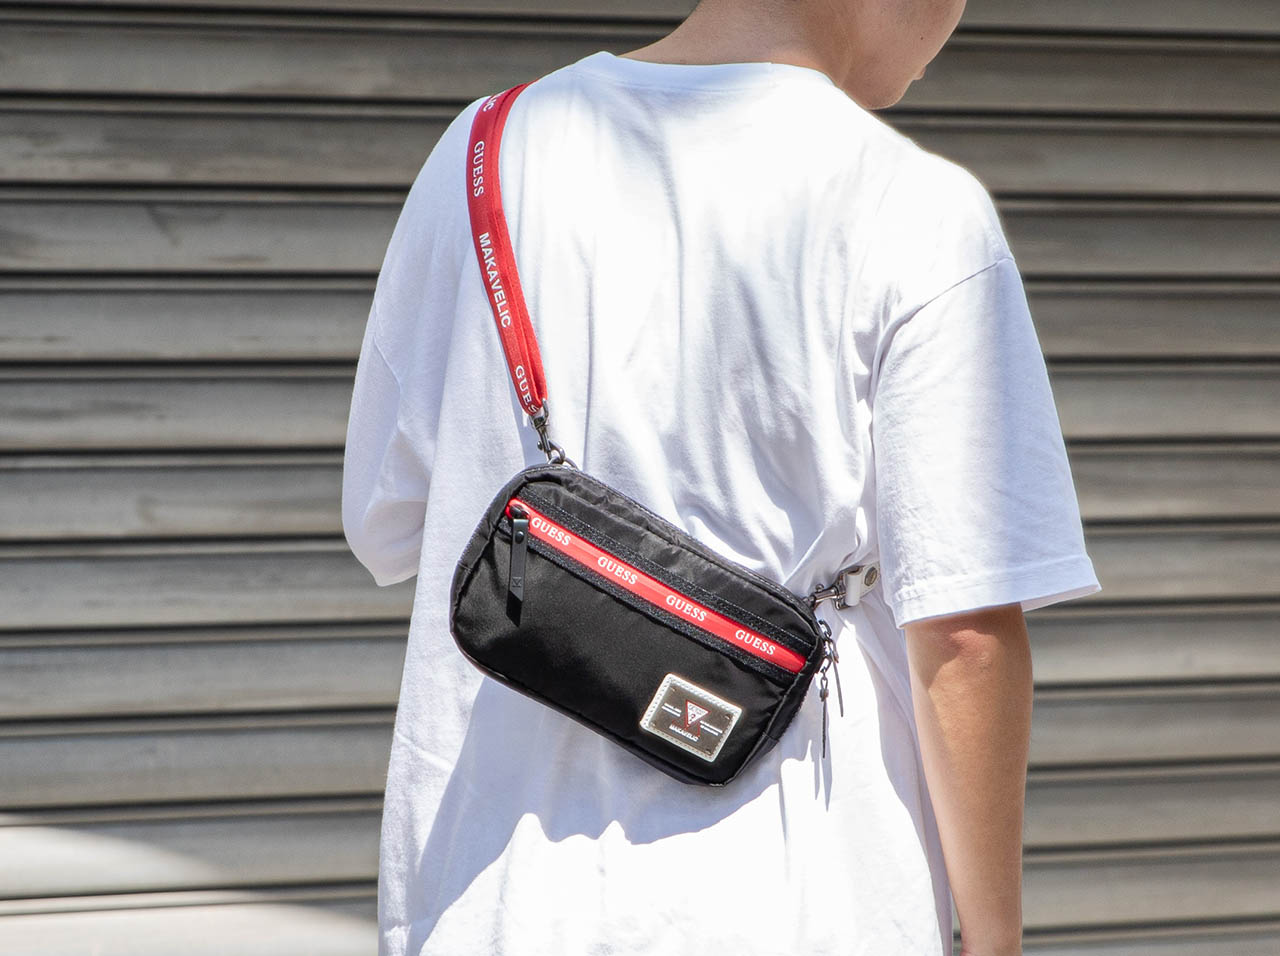 GUESS POUCH MAKAVELIC BAG(3109-10515)【マキャベリック】【カバン】【バッグ】【リュック】【ストアレビュー記載でソックスプレゼント対象品】